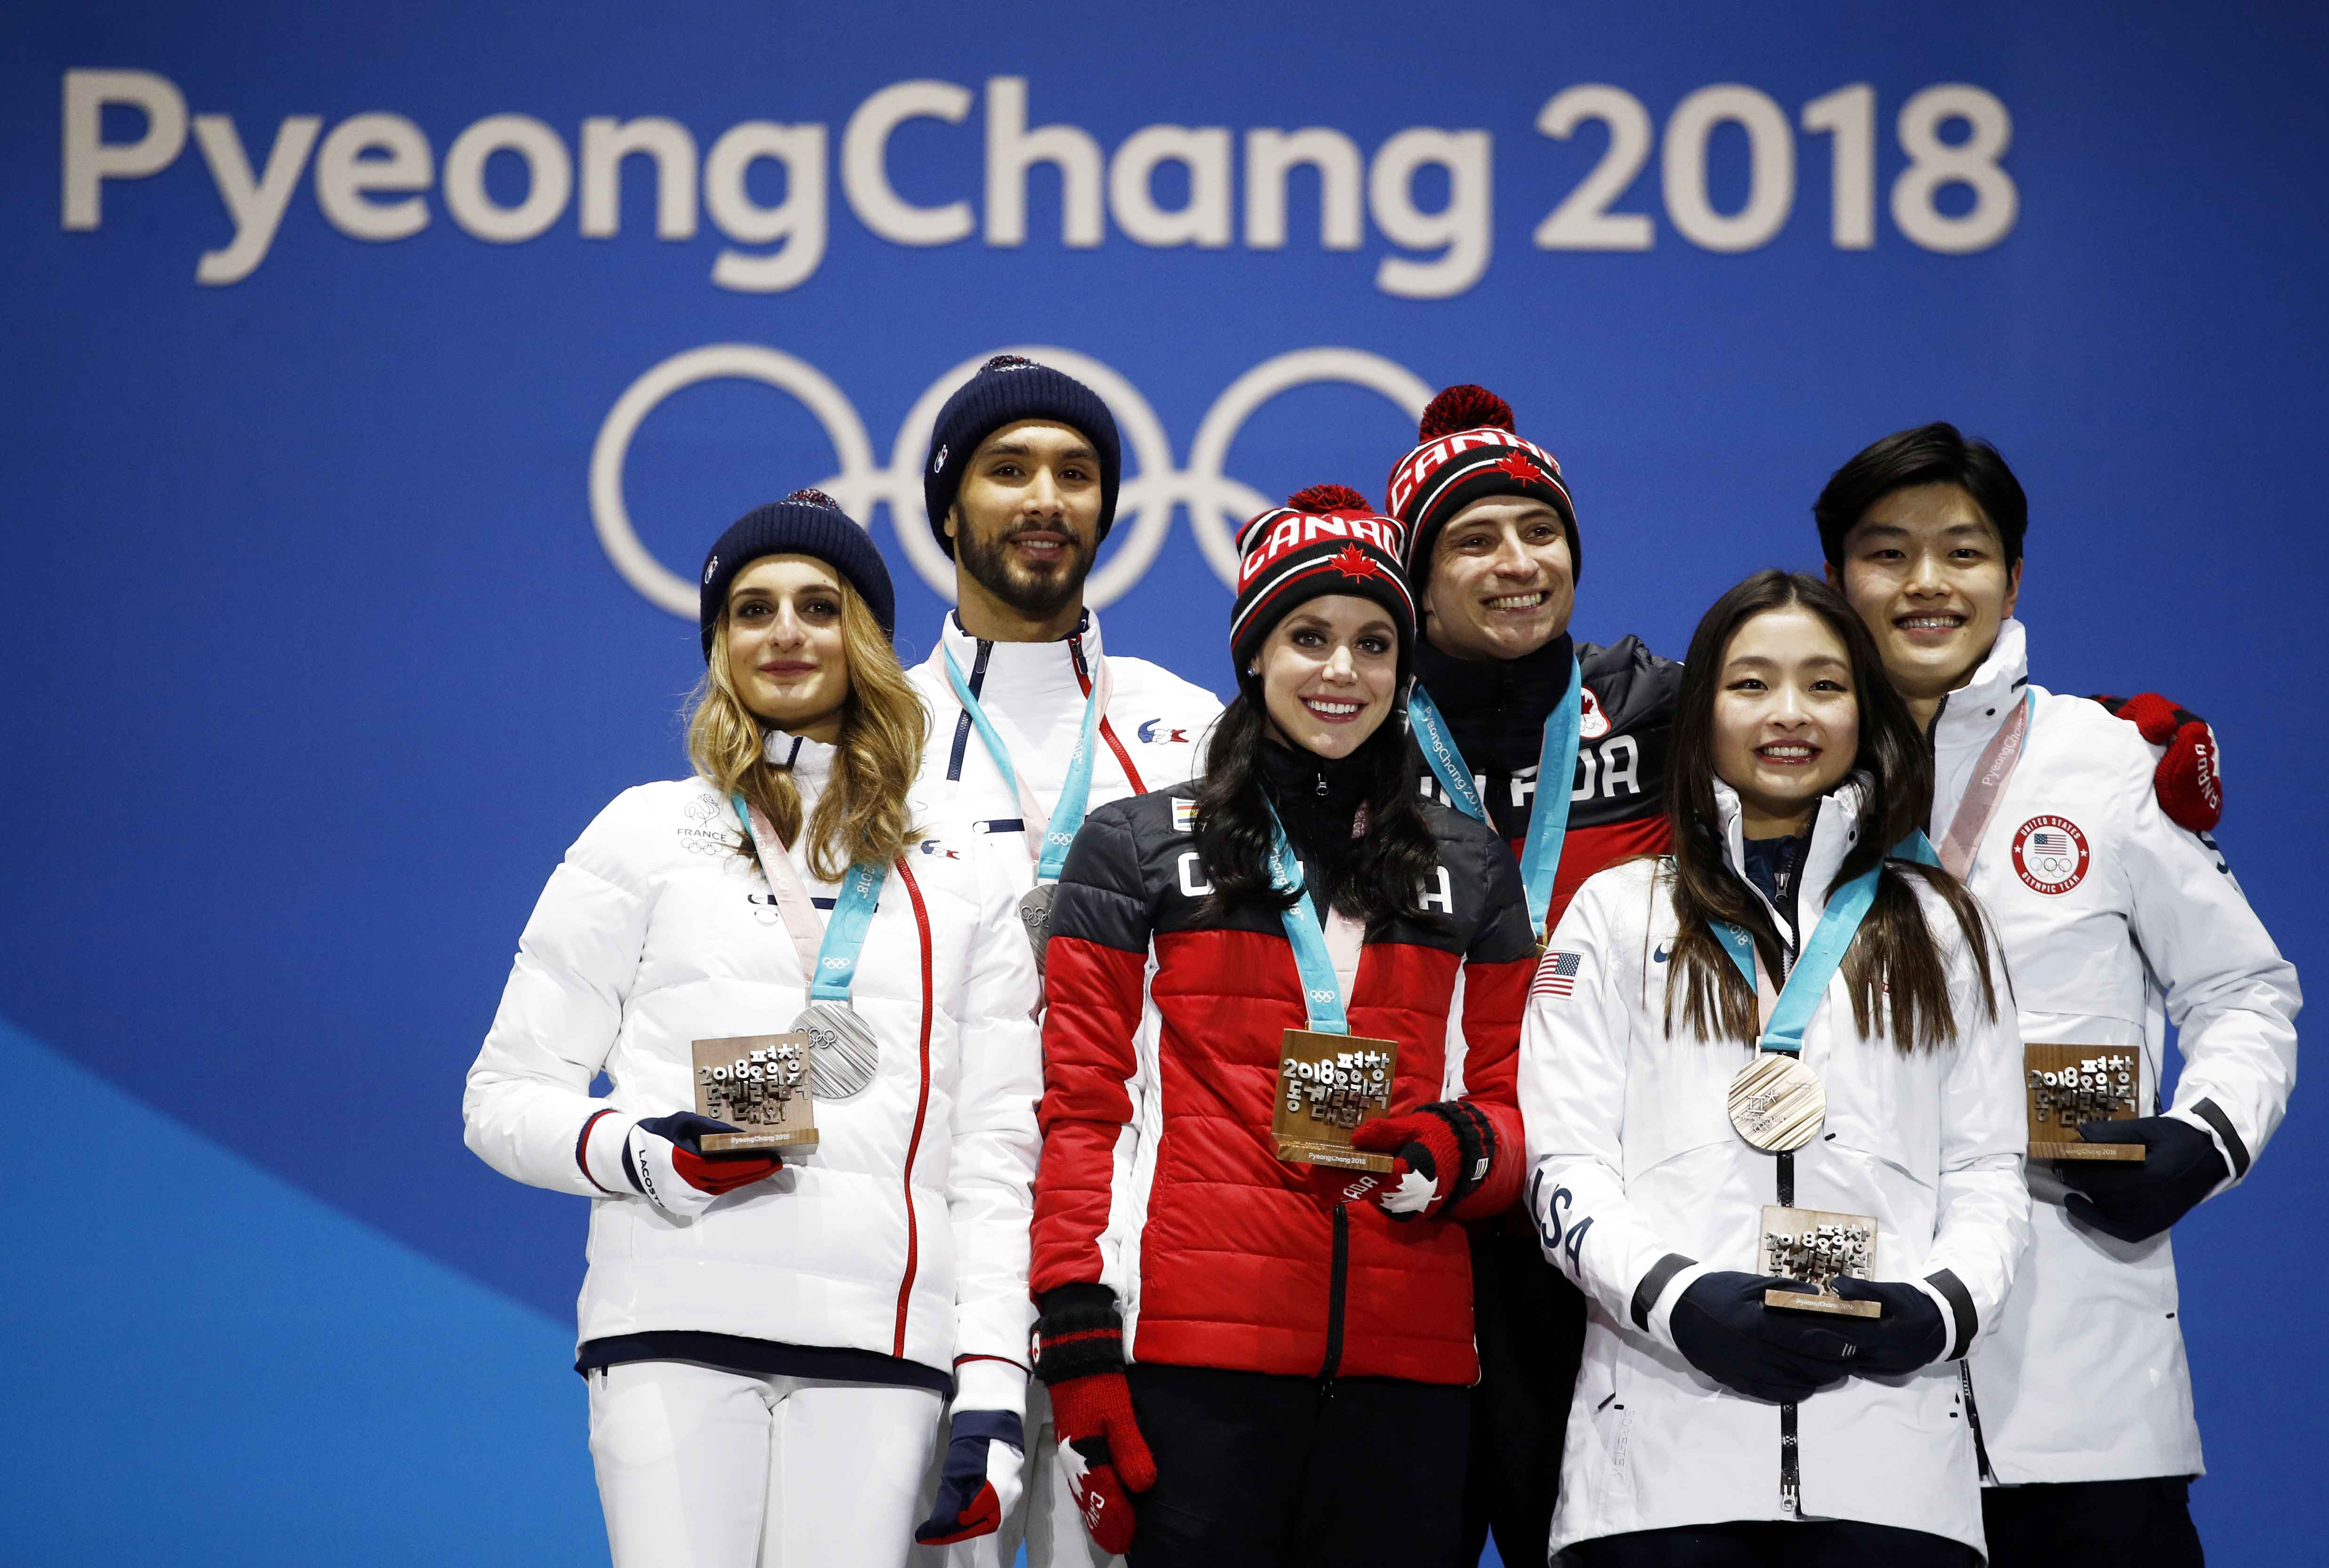 Medalists in the ice dance, free dance figure skating (from left) : Gabriella Papadakis and Guillaume Cizeron, of France (silver), Tessa Virtue and Scott Moir of Canada (gold) and Maia Shibutani and Alex Shibutani of the United States (bronze) pose during their medals ceremony at the 2018 Winter Olympics in Pyeongchang, South Korea on Tuesday.